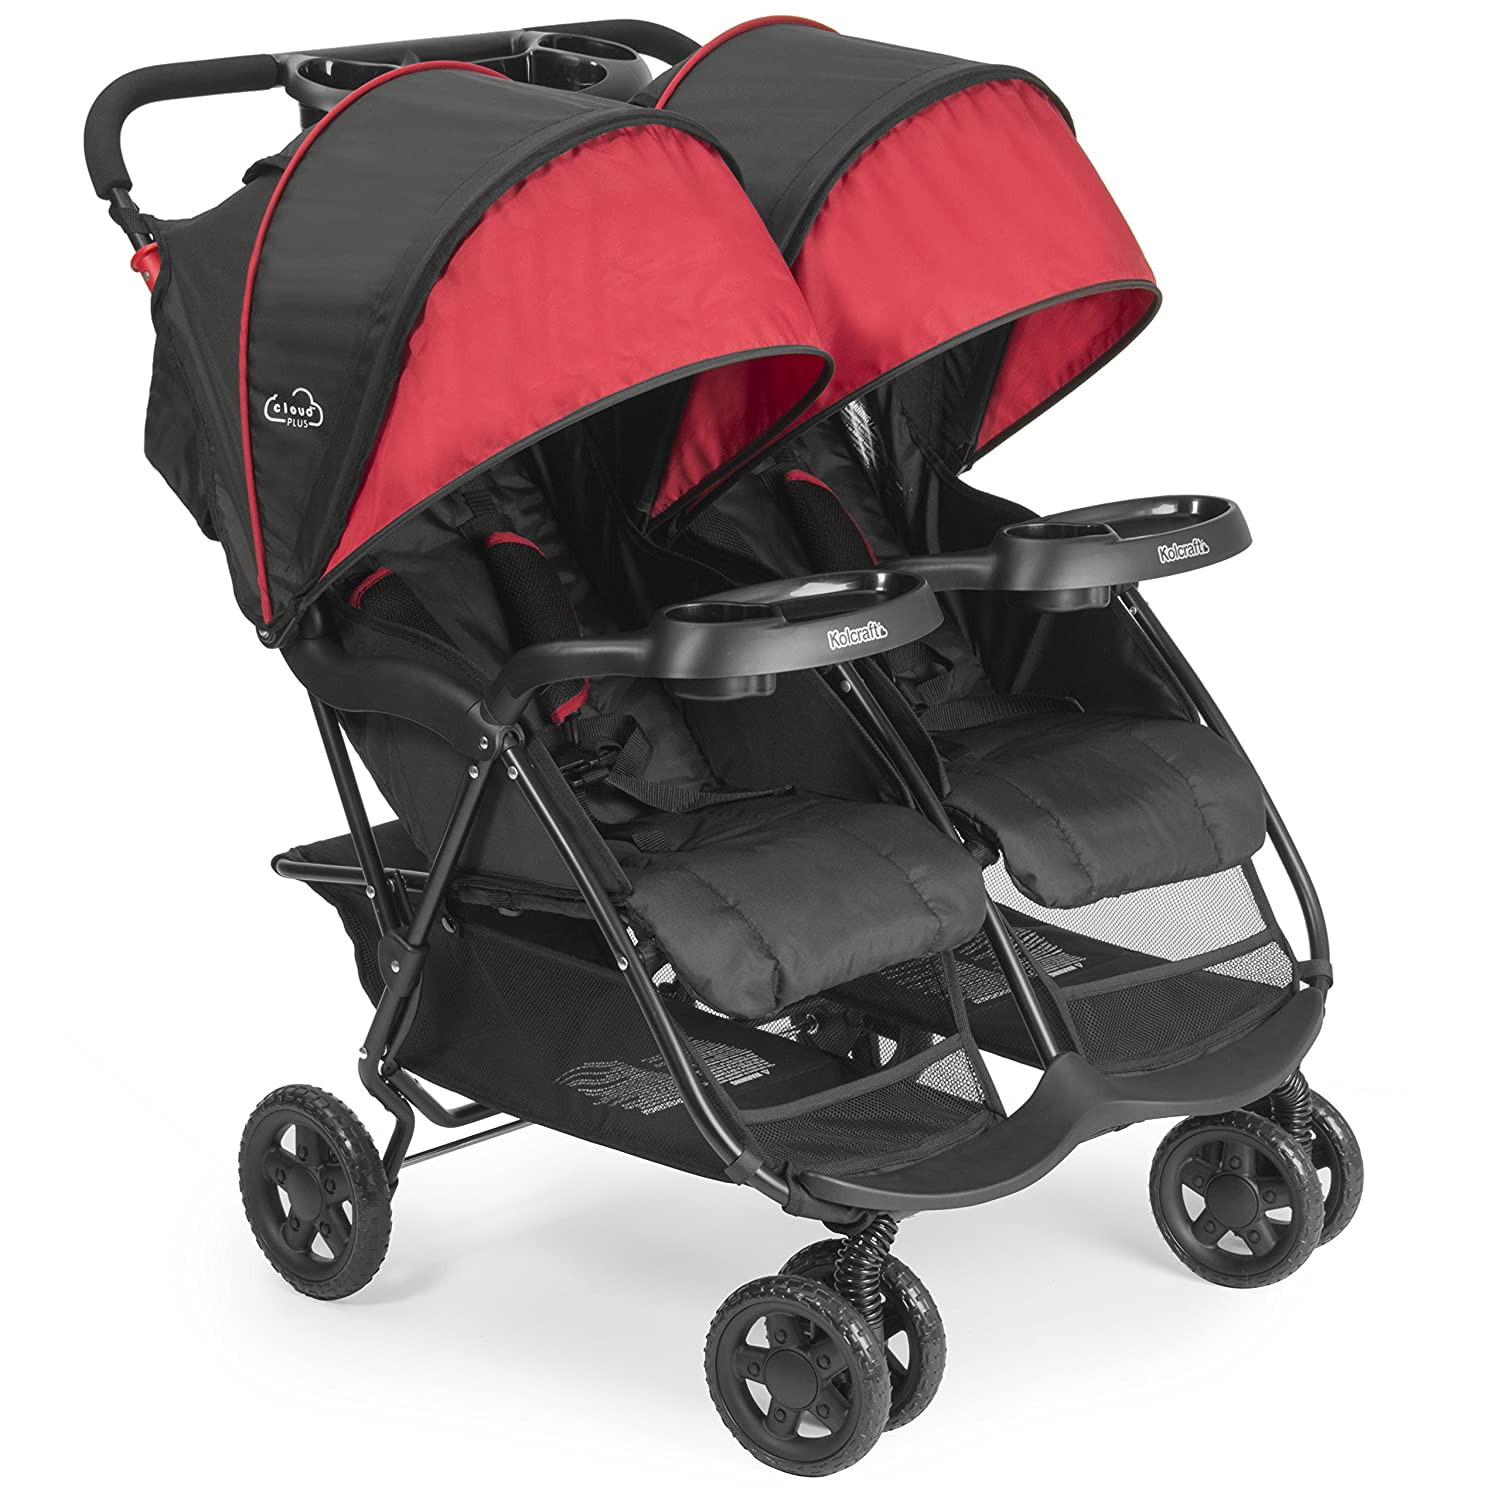 Kolcraft cloud lightweight double stroller, 5- points